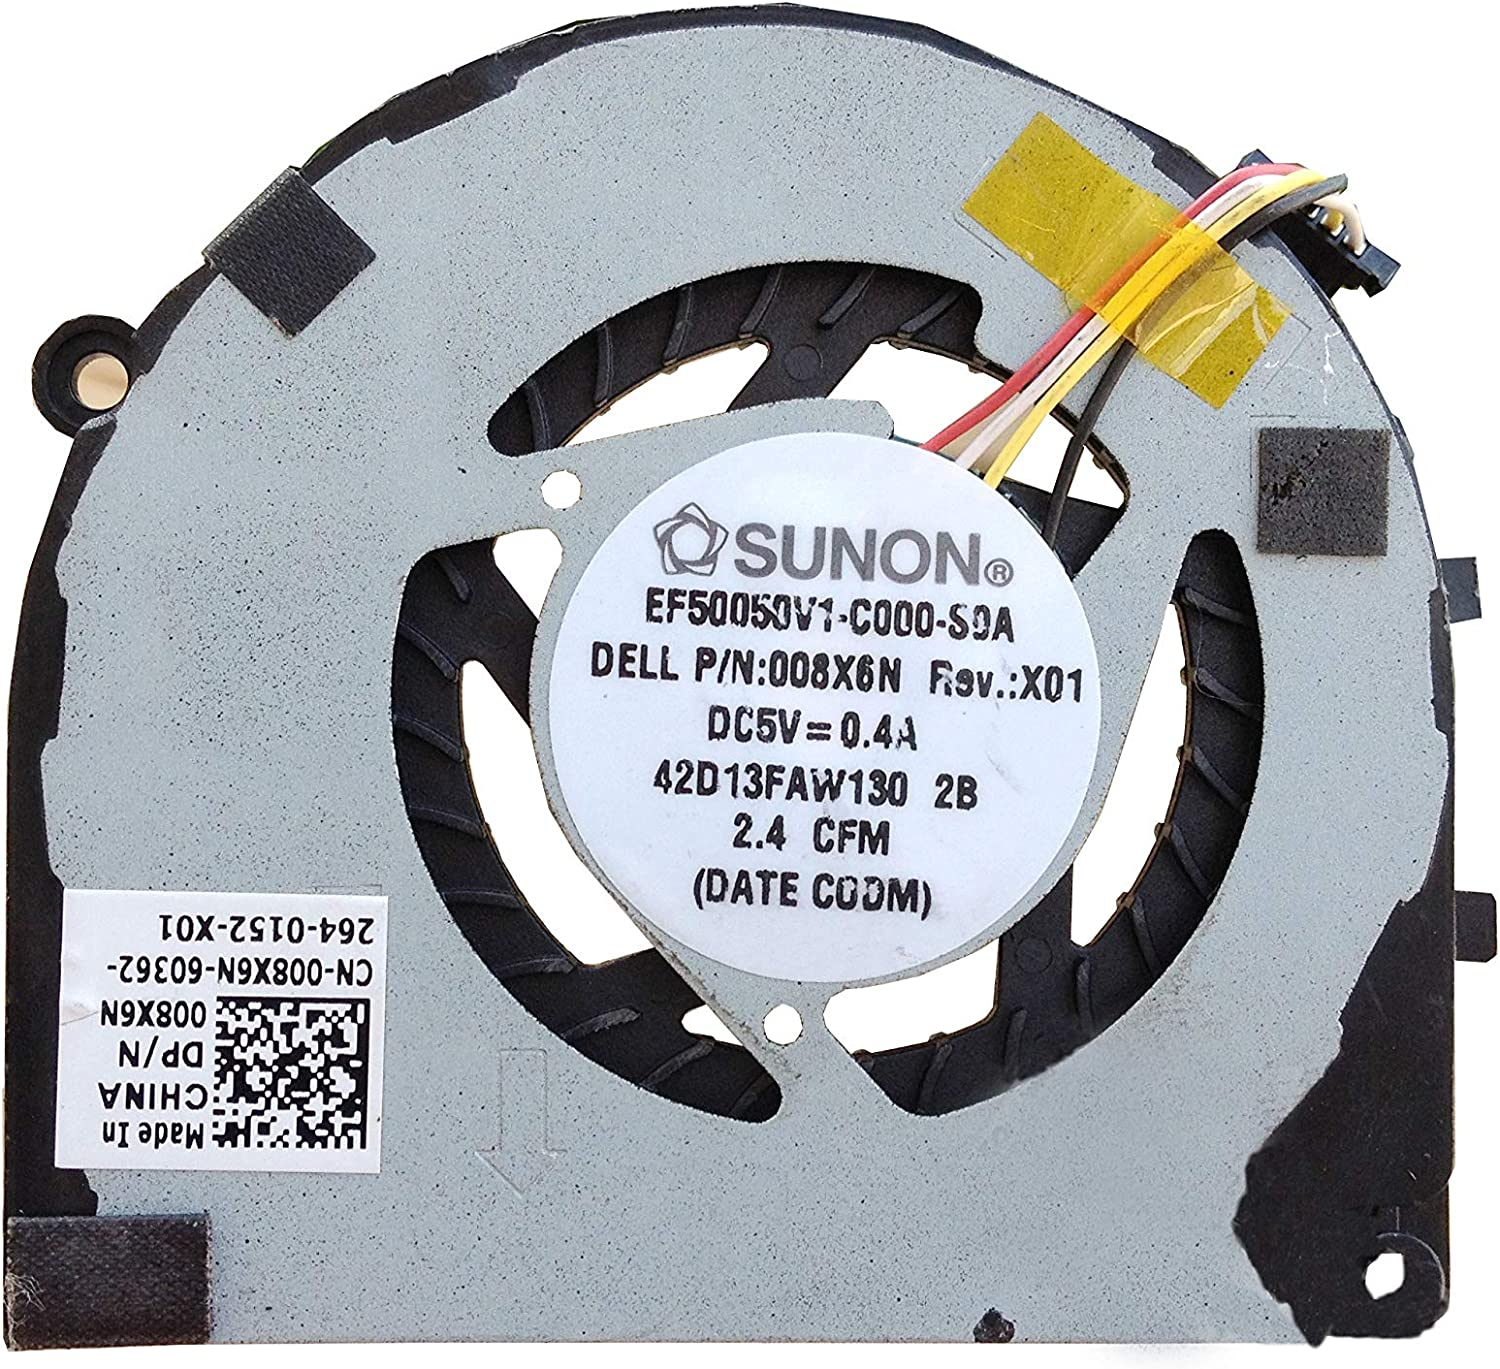 Z-one Fan Replacement for Dell XPS 13 L322x Ultrabook 9333 Series CPU Cooling Fan, 008X6N 08X6N 4-Wire 4-Pin 5V